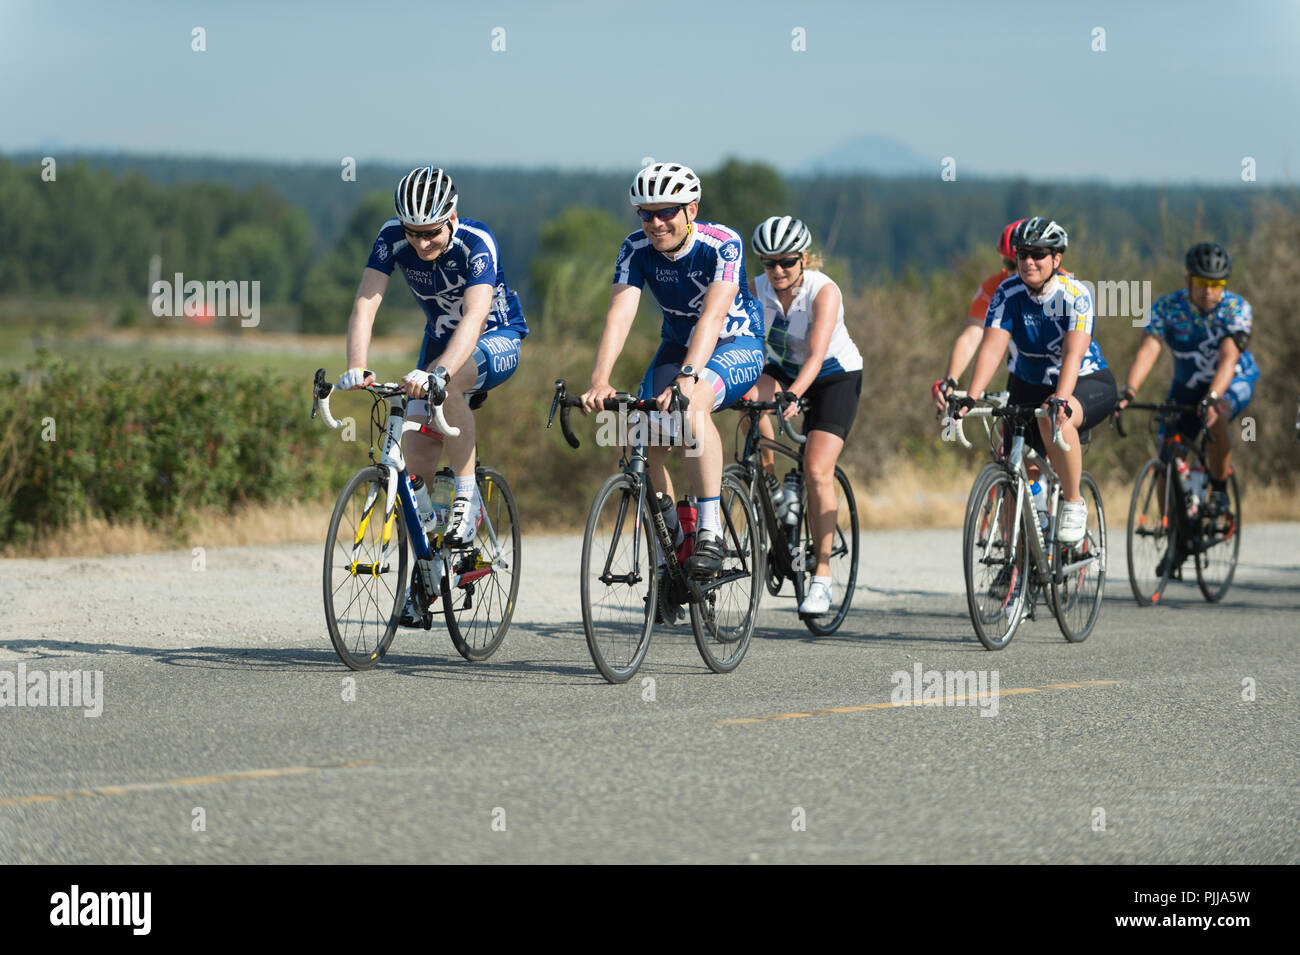 Bicyclists wearing helmets, cycling down a roadway. - Stock Image